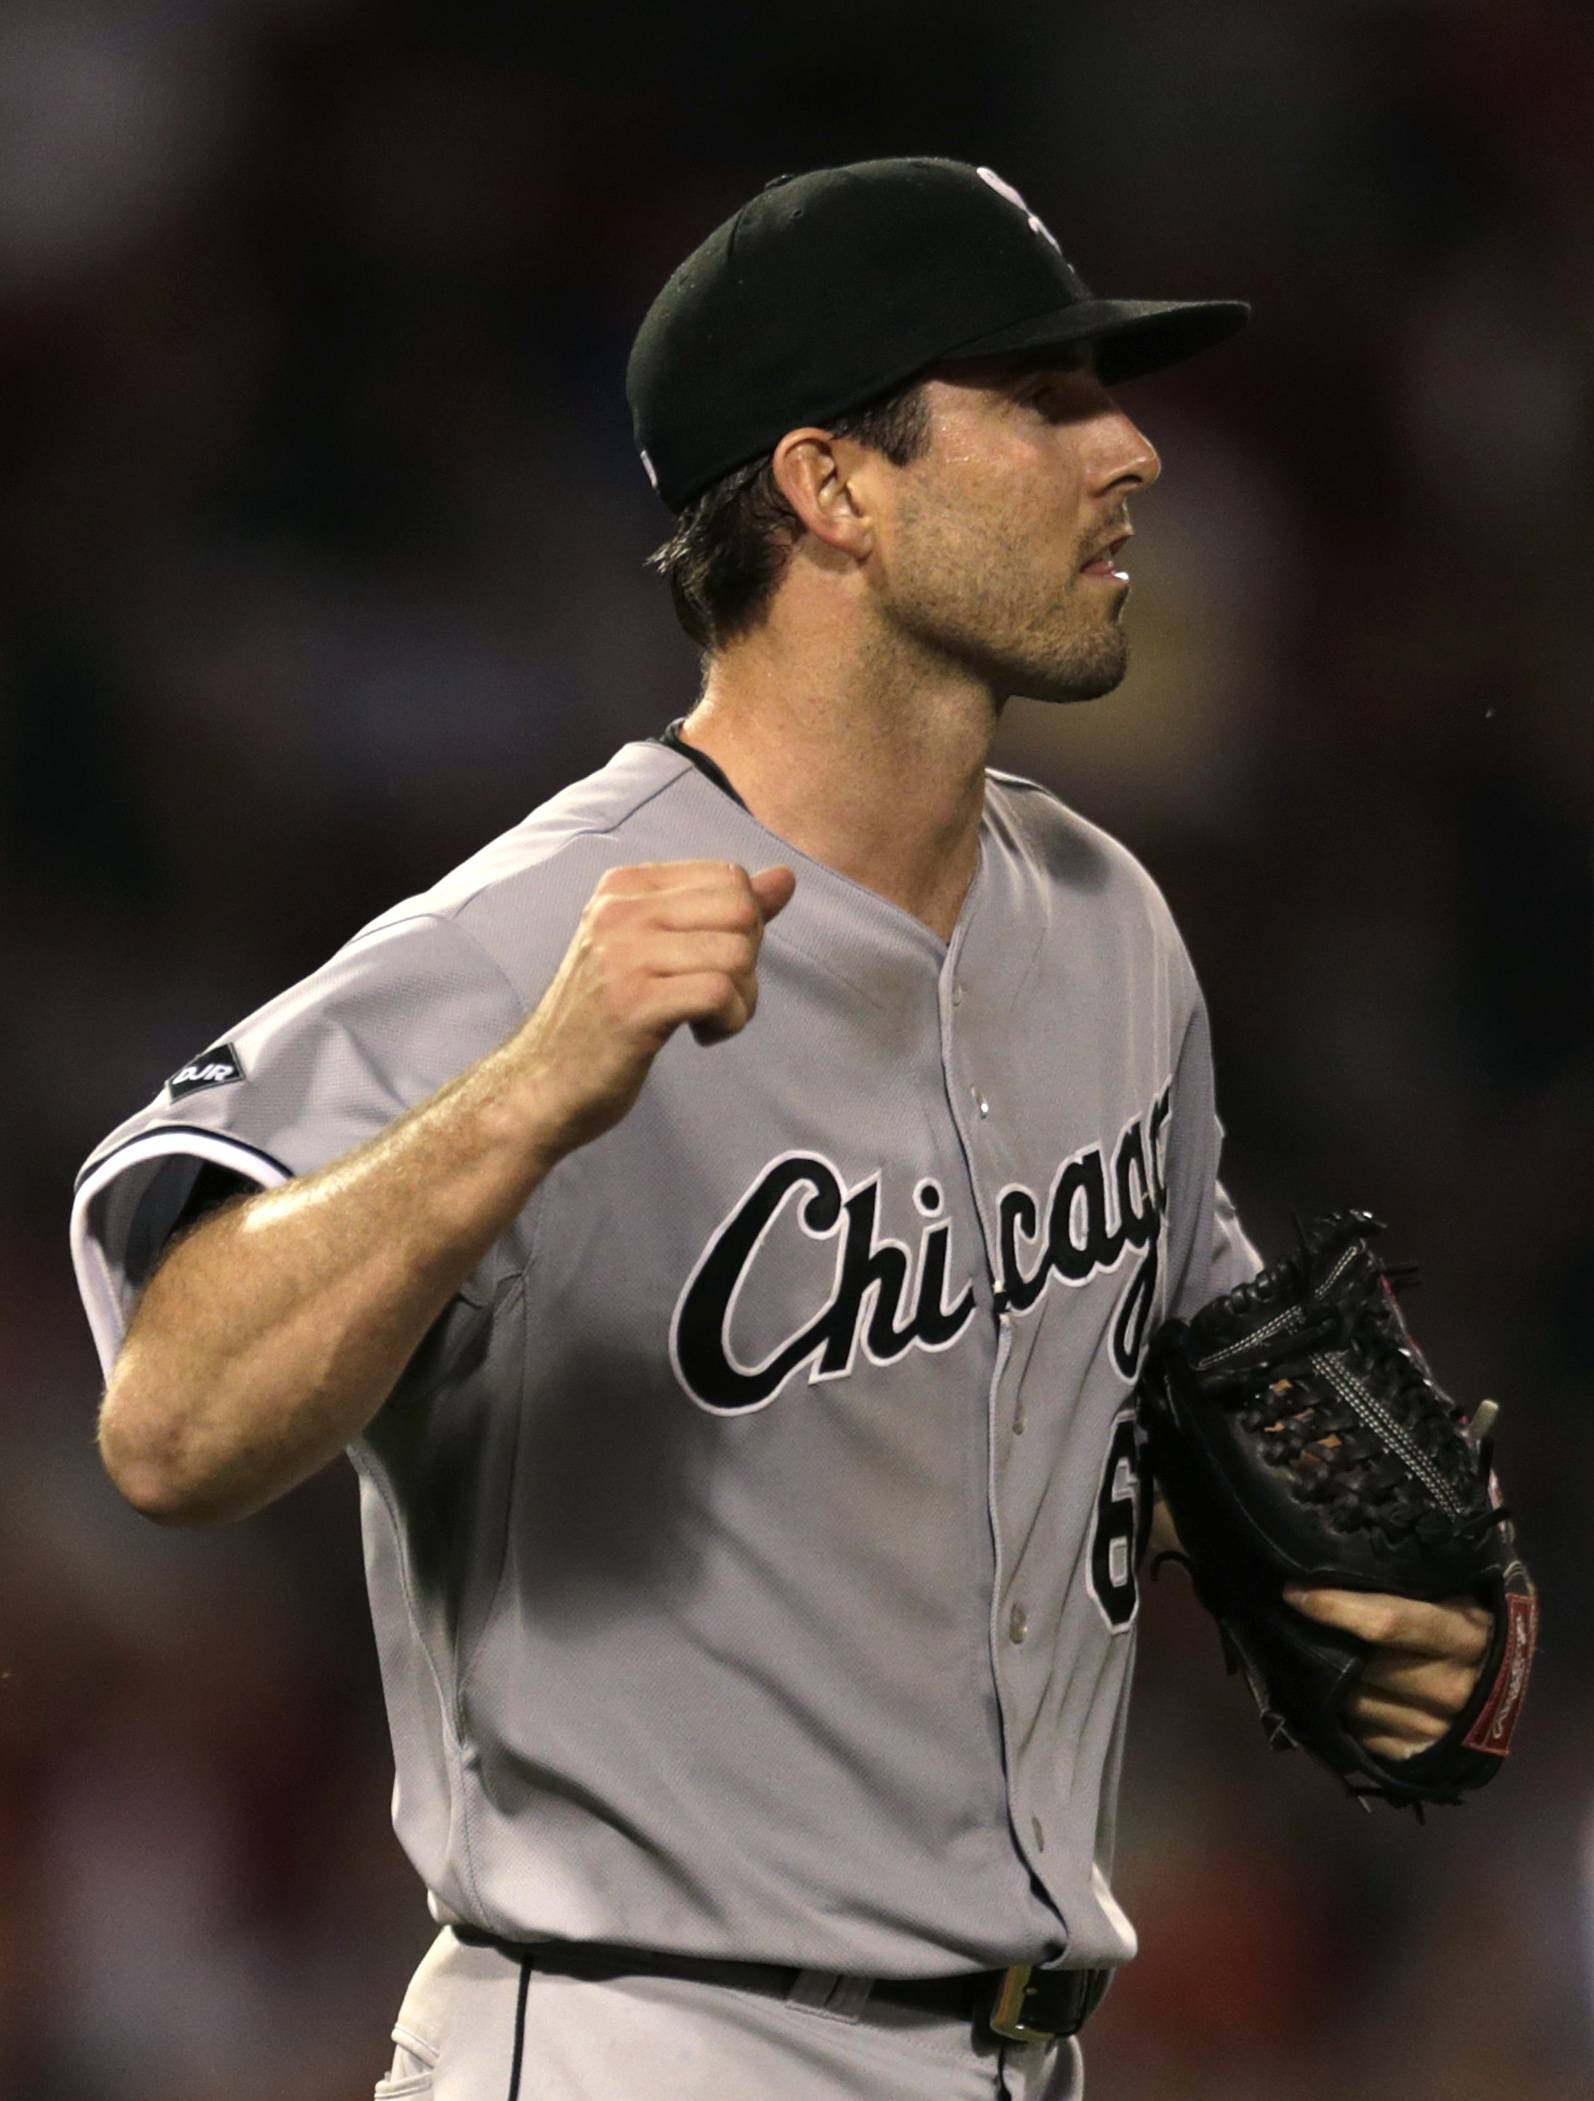 White Sox starting pitcher Scott Carroll pumps his fist after getting the Red Sox' Brock Holt to ground out to end the sixth inning Monday night. Carroll allowed only 1 hit in 6⅔ innings to earn the 4-0 victory.